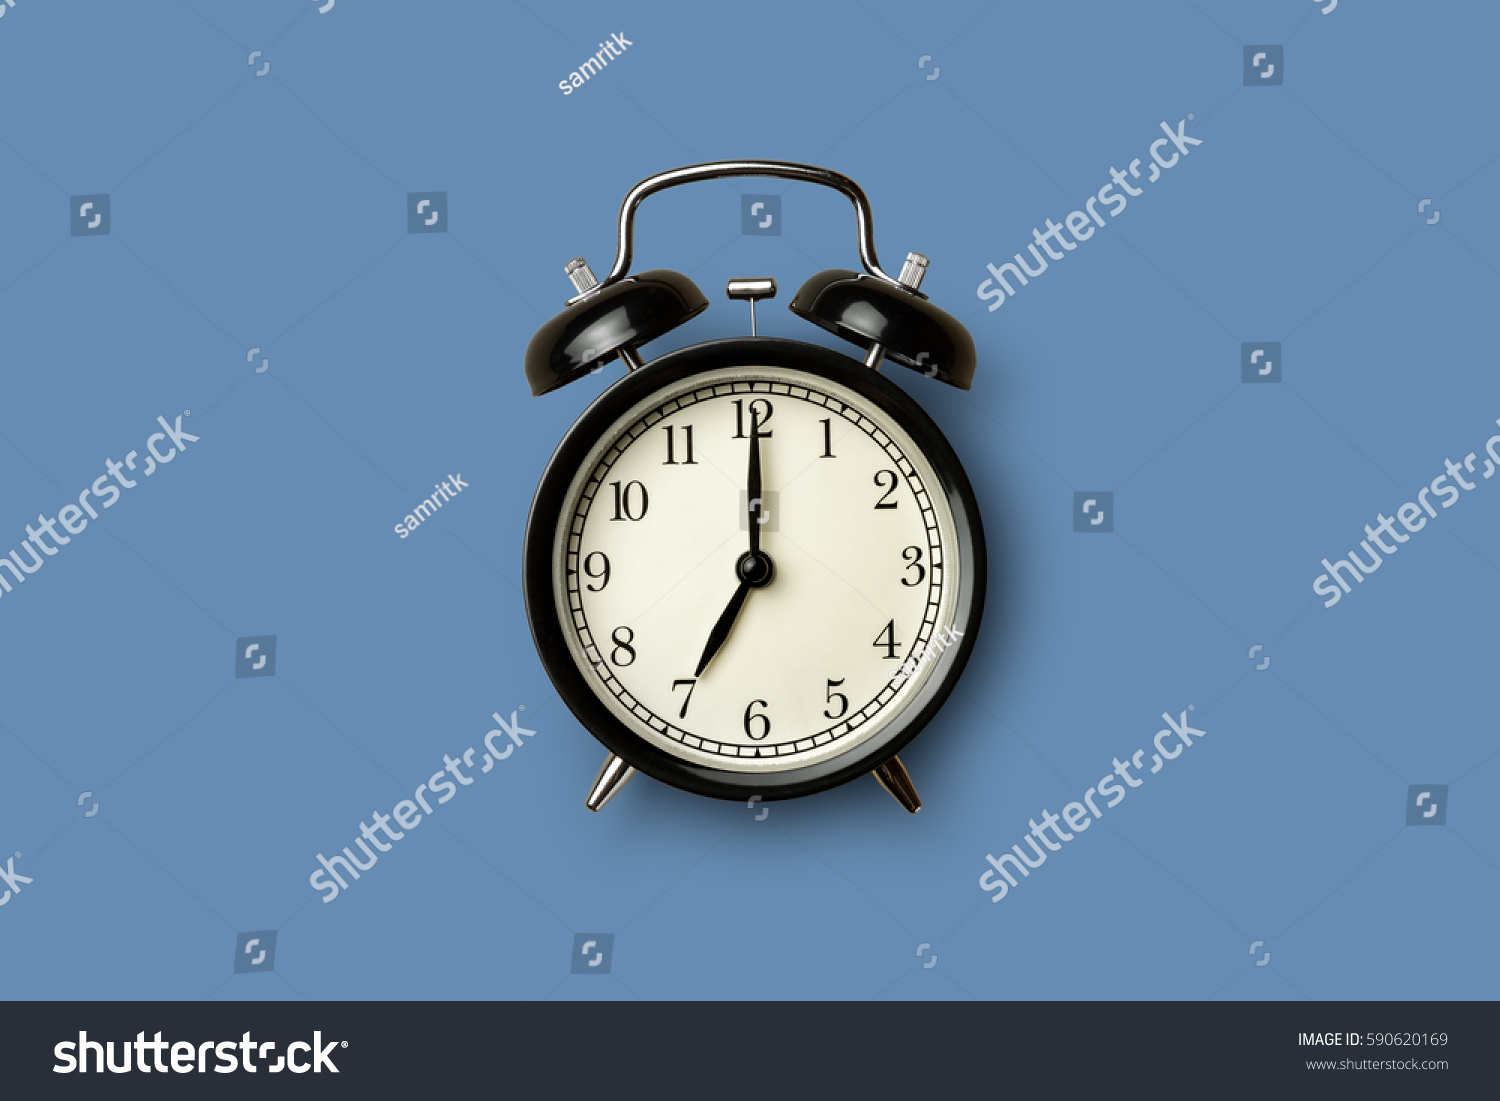 black vintage alarm clock on blue color background